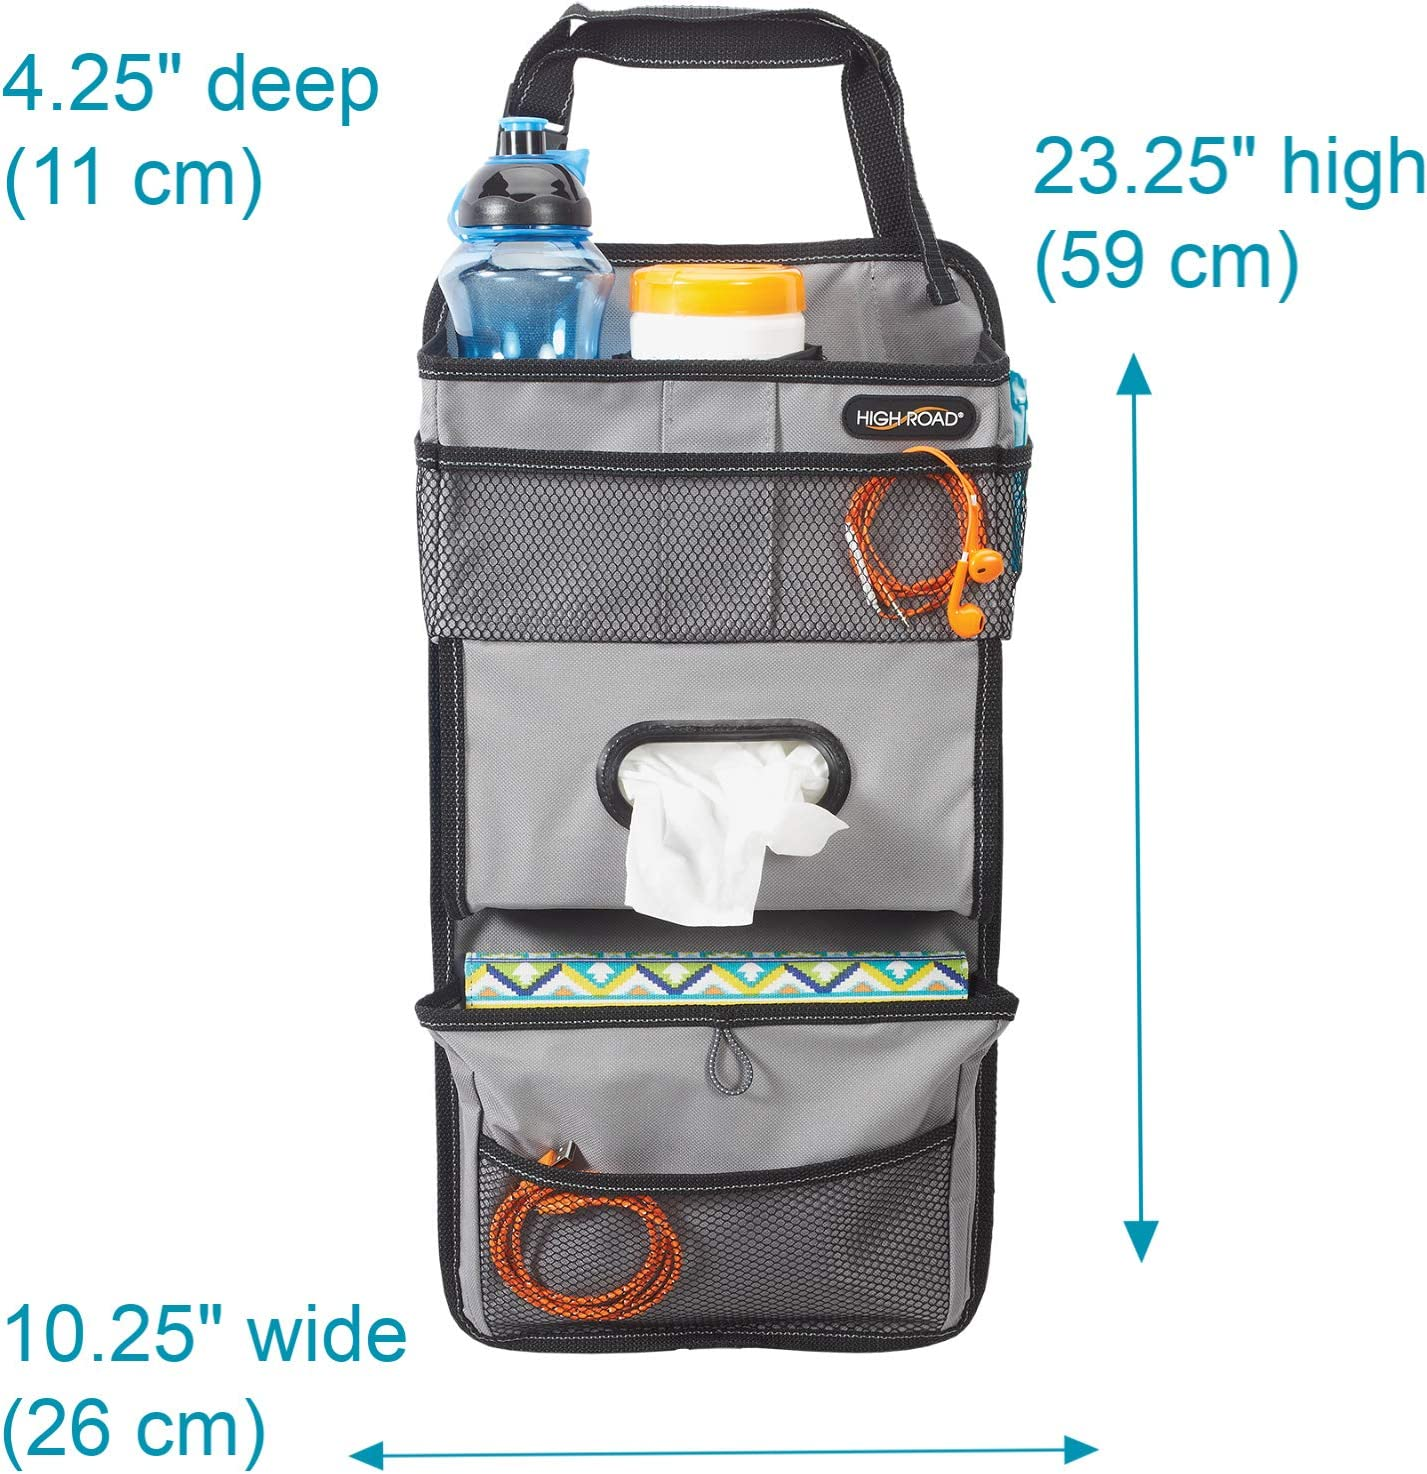 High Road TissuePockets Backseat Organizer with Tissue Compartment and Cup Holder Bin Gray